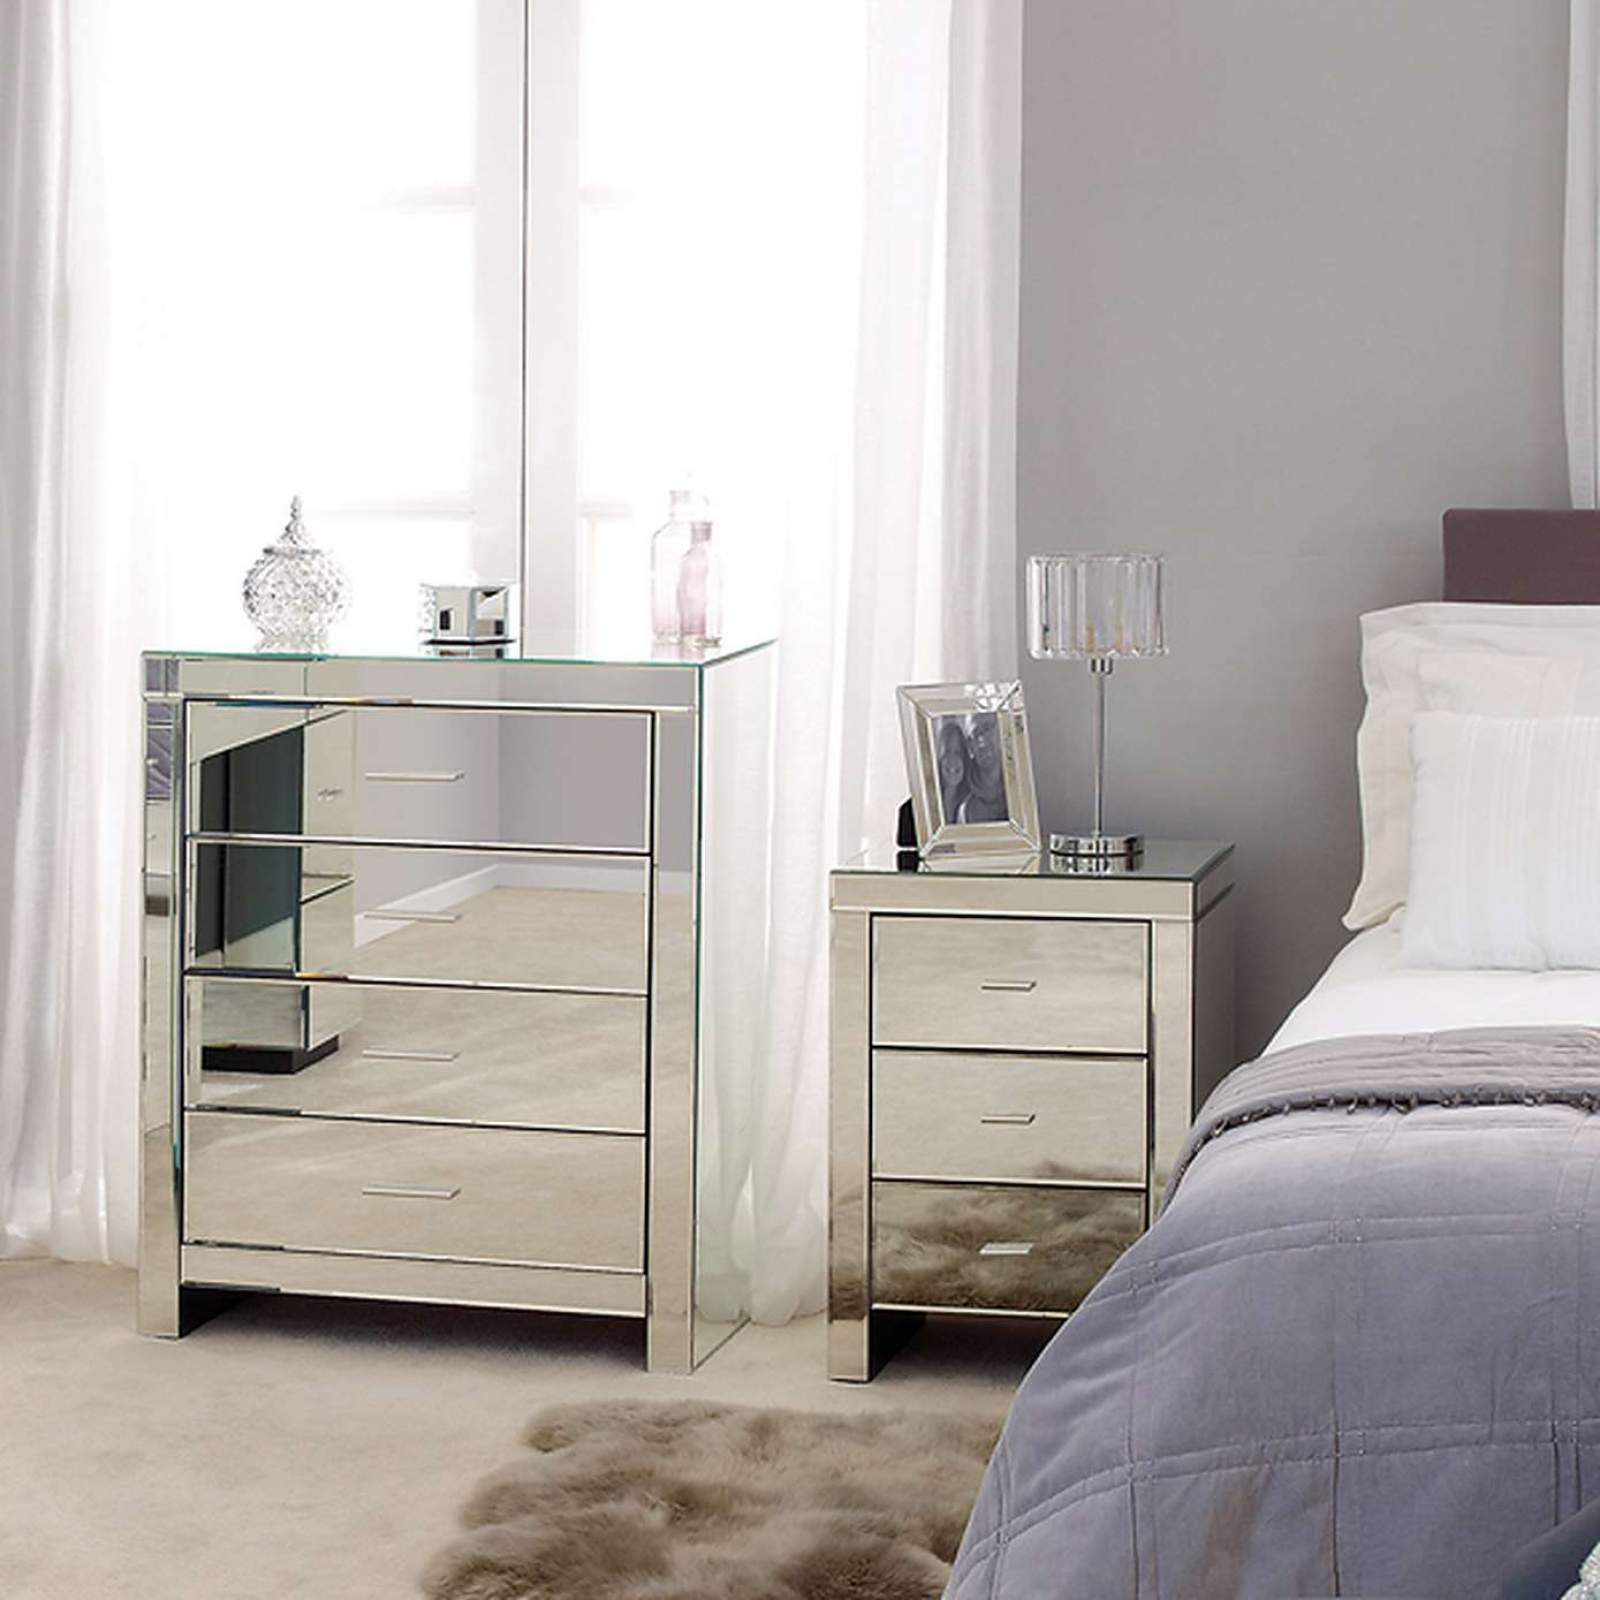 mirrored bedroom furniture PCDRSUH